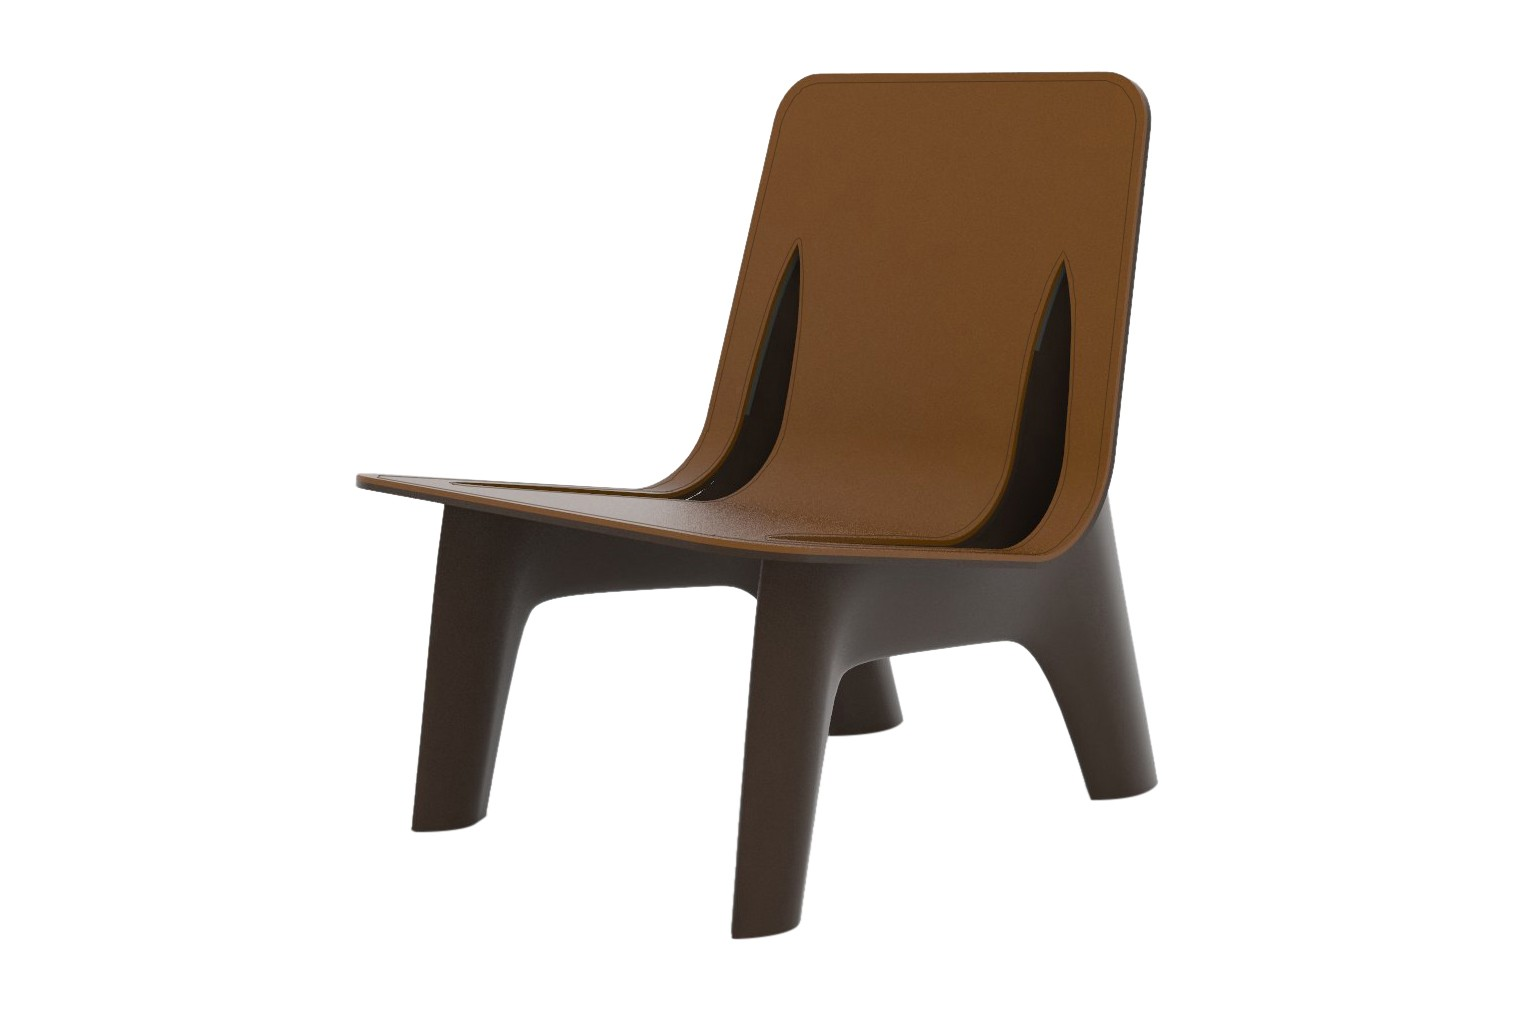 J-Chair Lounge with Upholstery RAL 7021, Steel